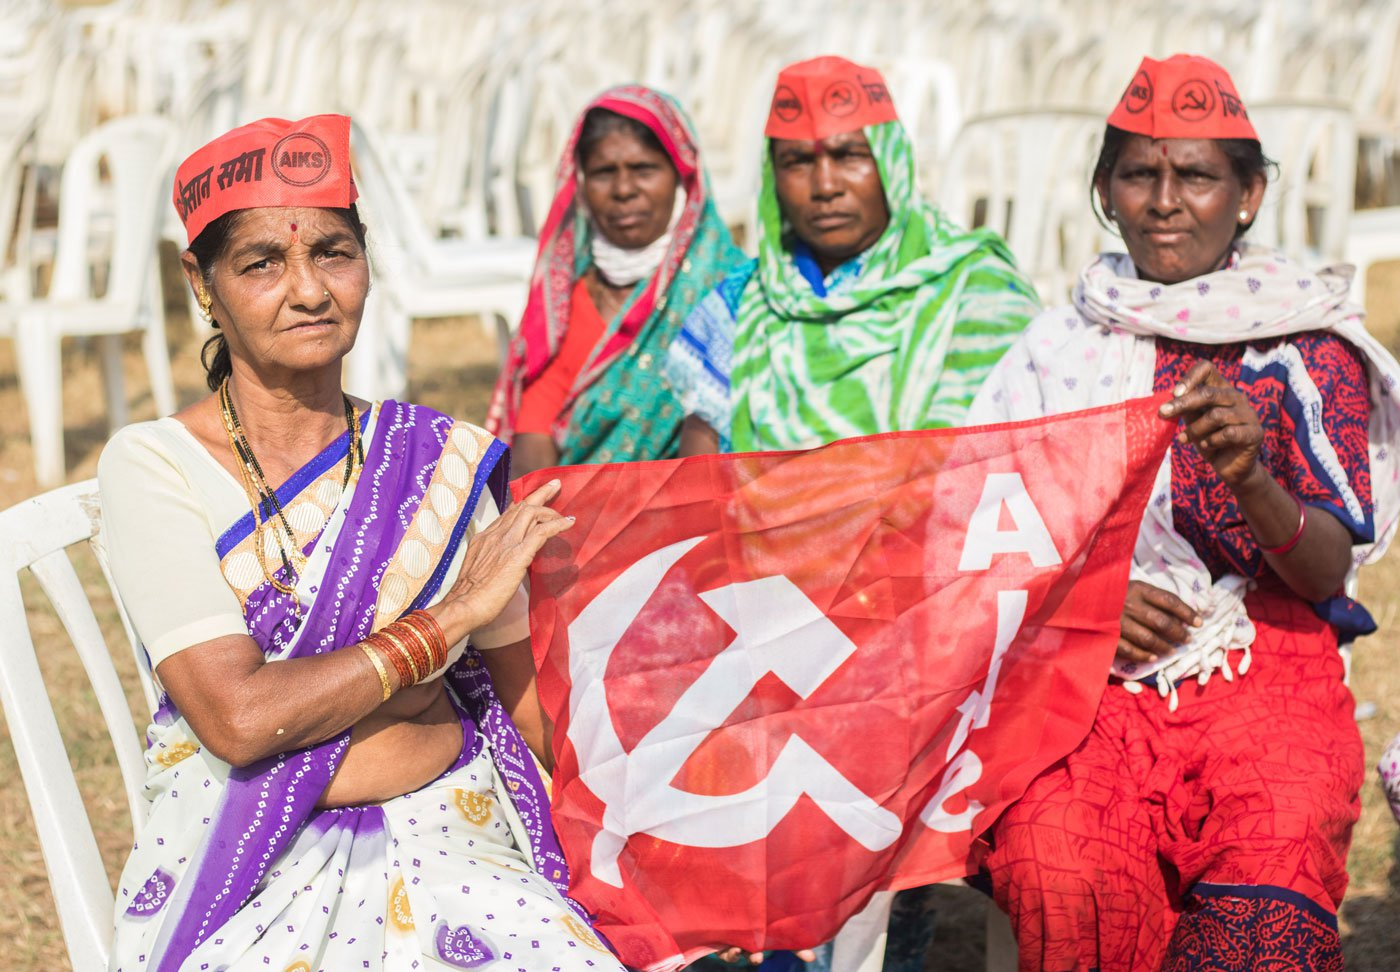 Women farmers from Nashik protesting